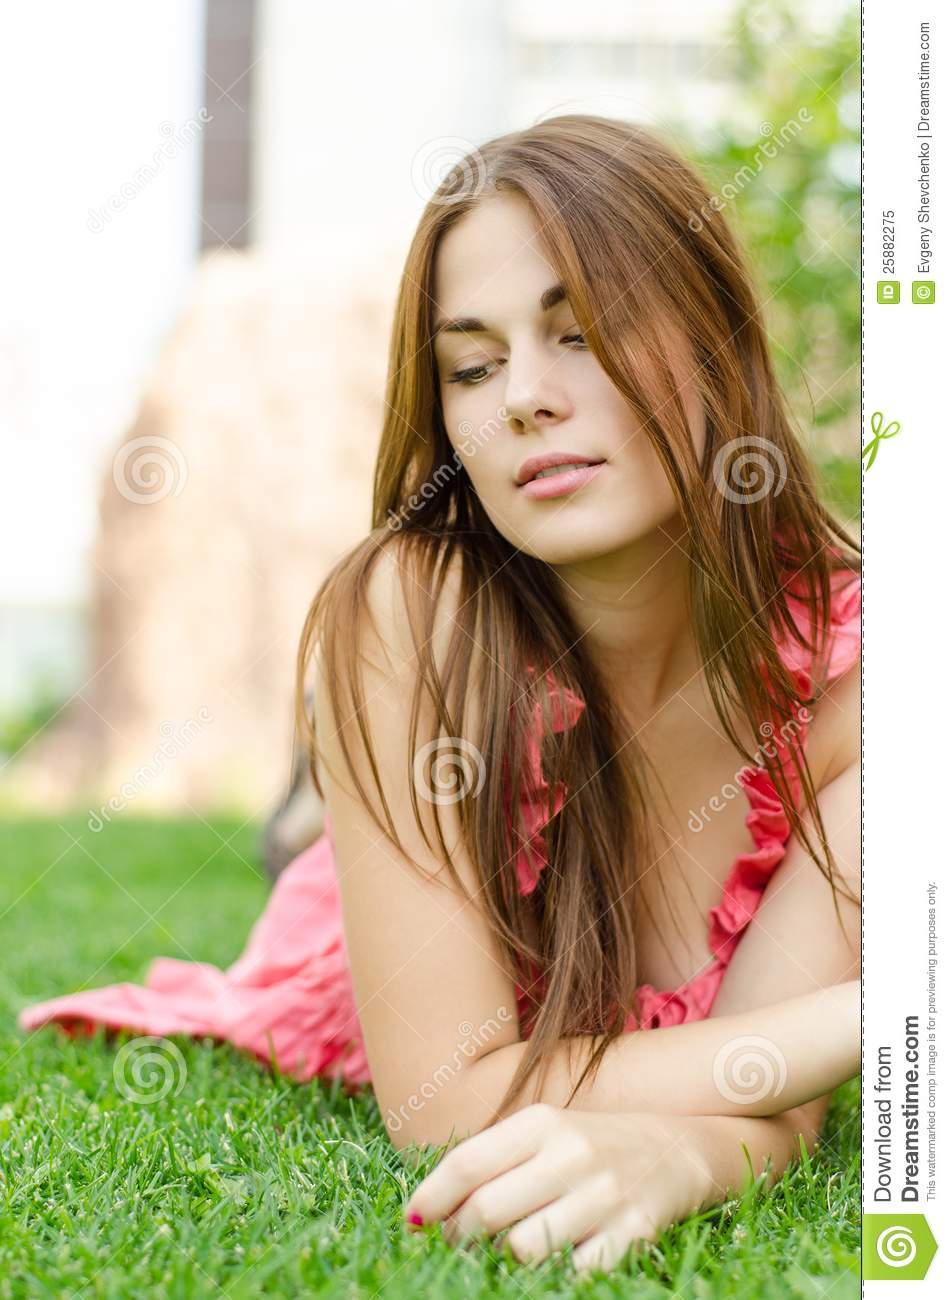 Young Pretty Woman Lying On Green Grass In Park Royalty